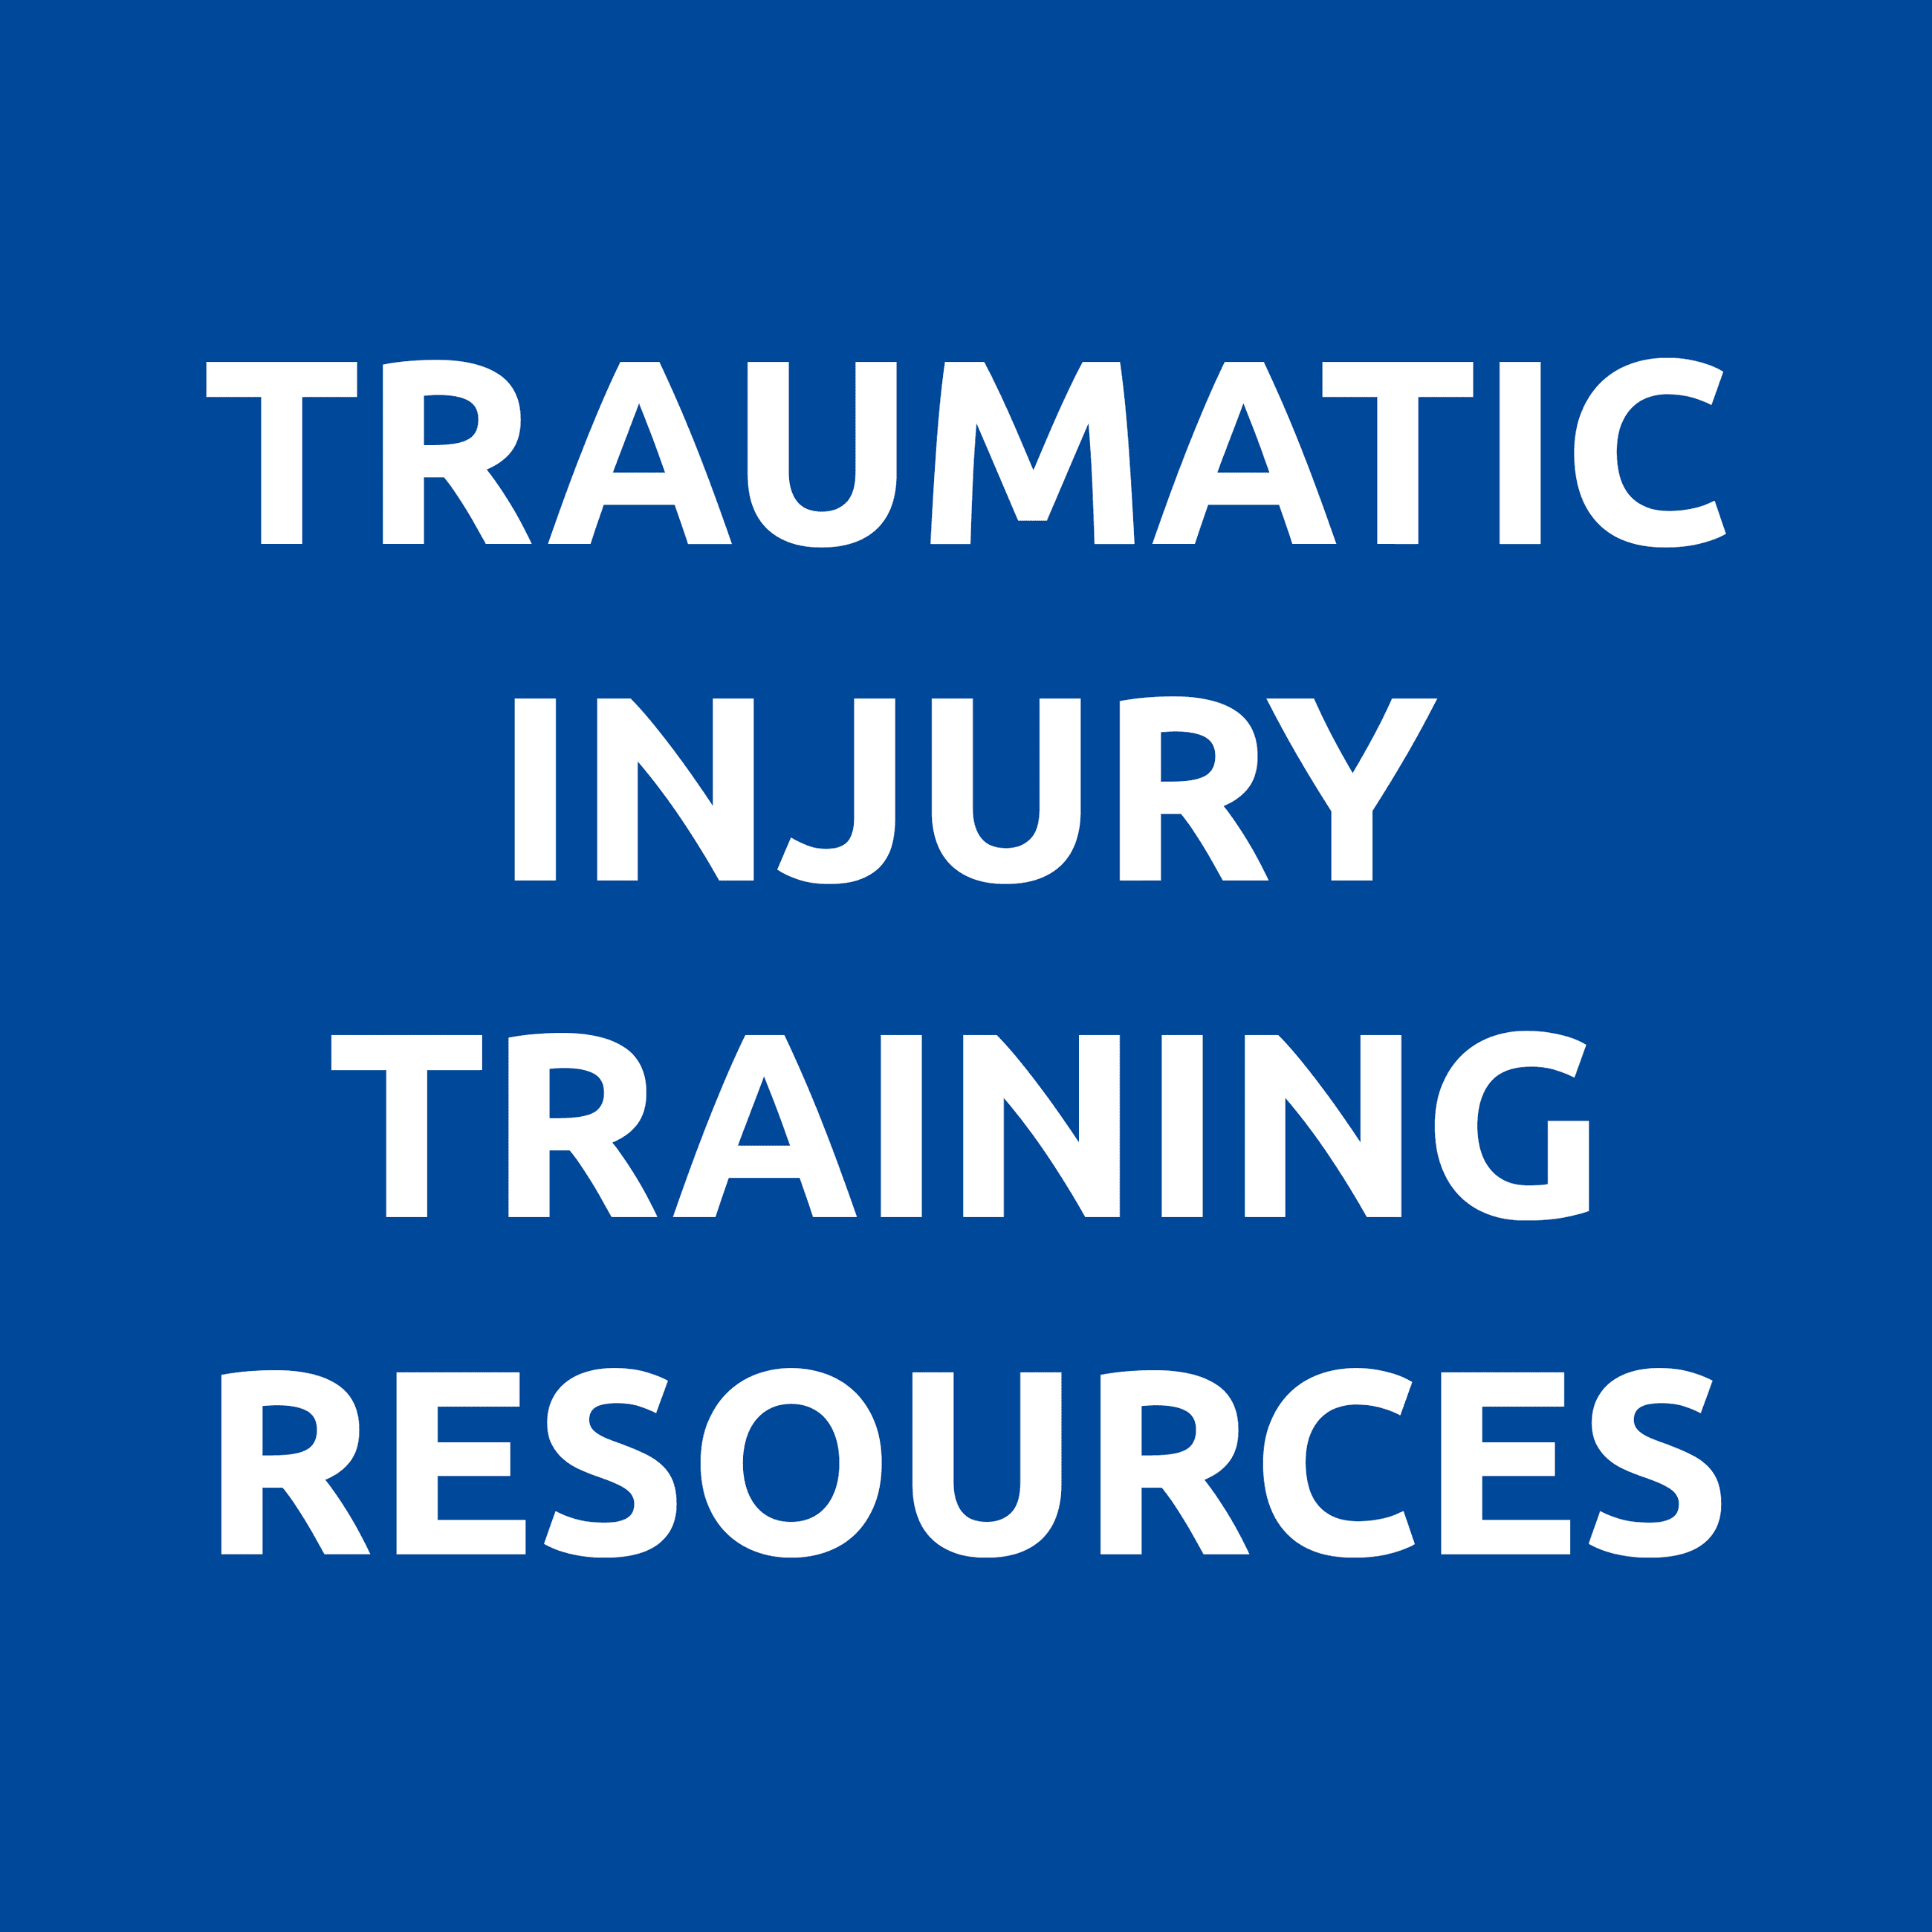 traumatic injury training resources